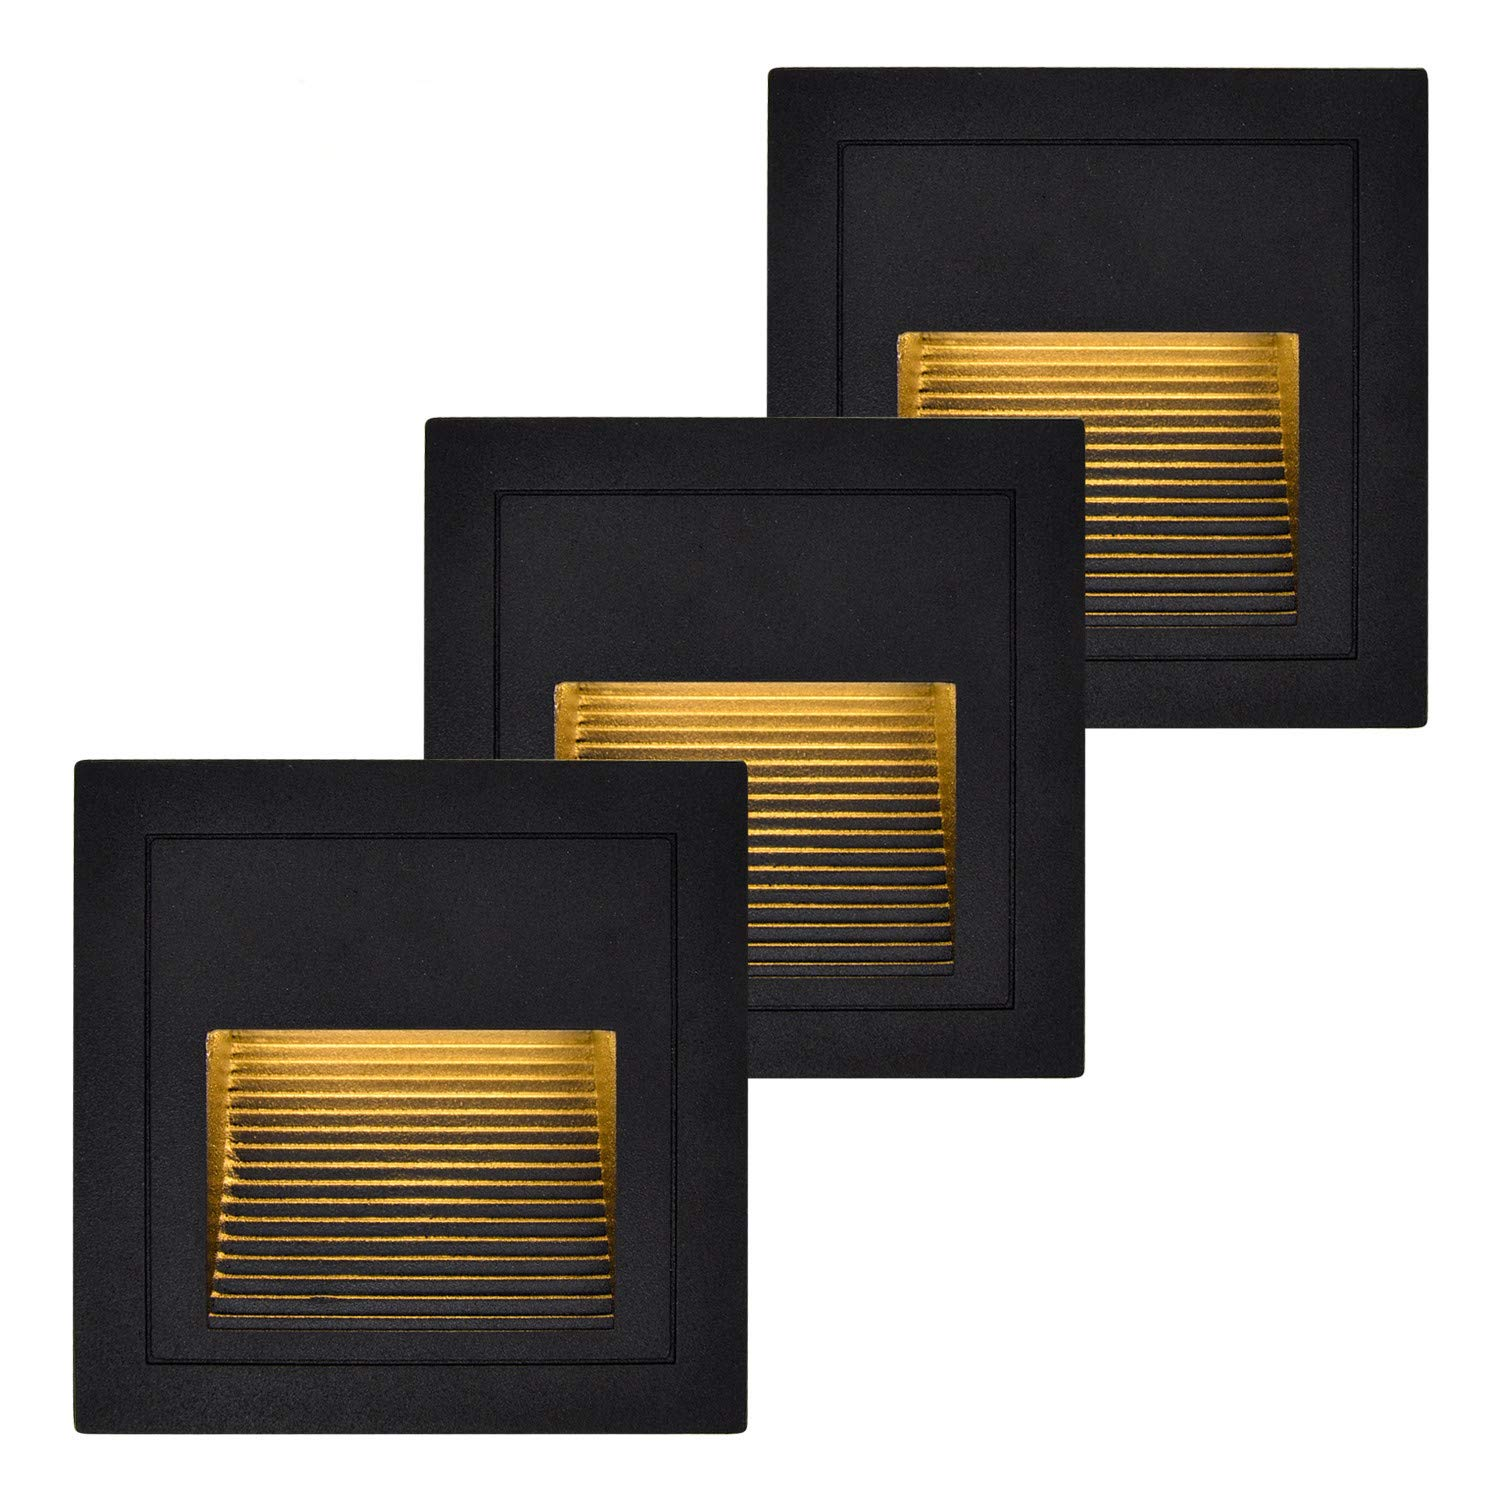 (3 Pack) LED Step Lights, BOLXZHU Recessed Stair Light, Waterproof LED Wall Sconces Lighting Indoor Outdoor Night Light 3W 300LM 3000K with 86 Type Boxes(Black+Warm White)